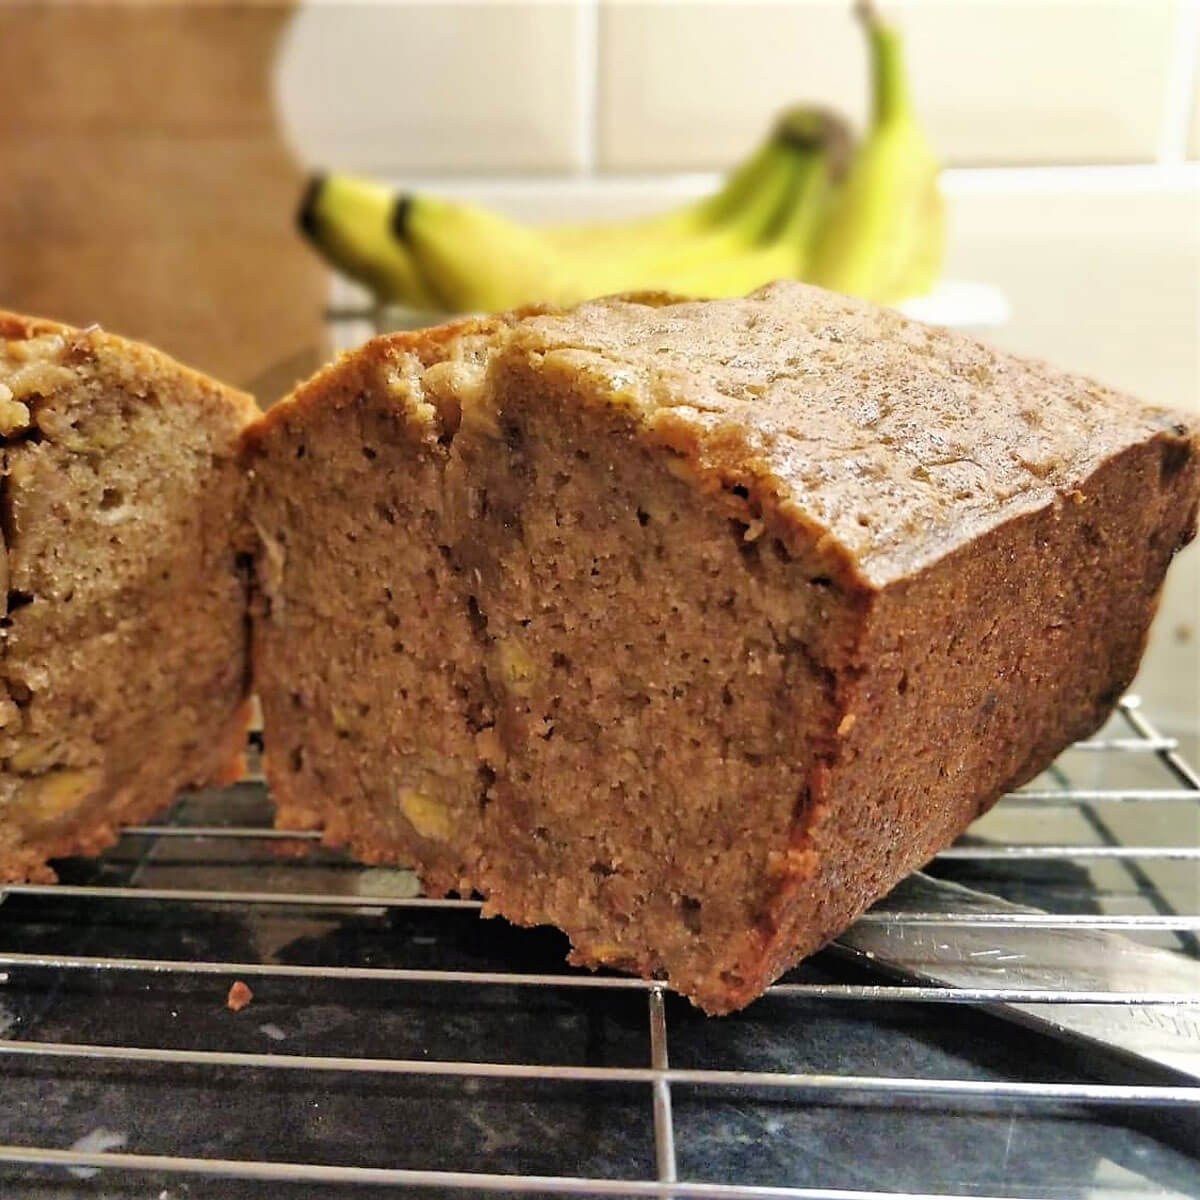 Final result of banana bread, sliced open with bananas in the background